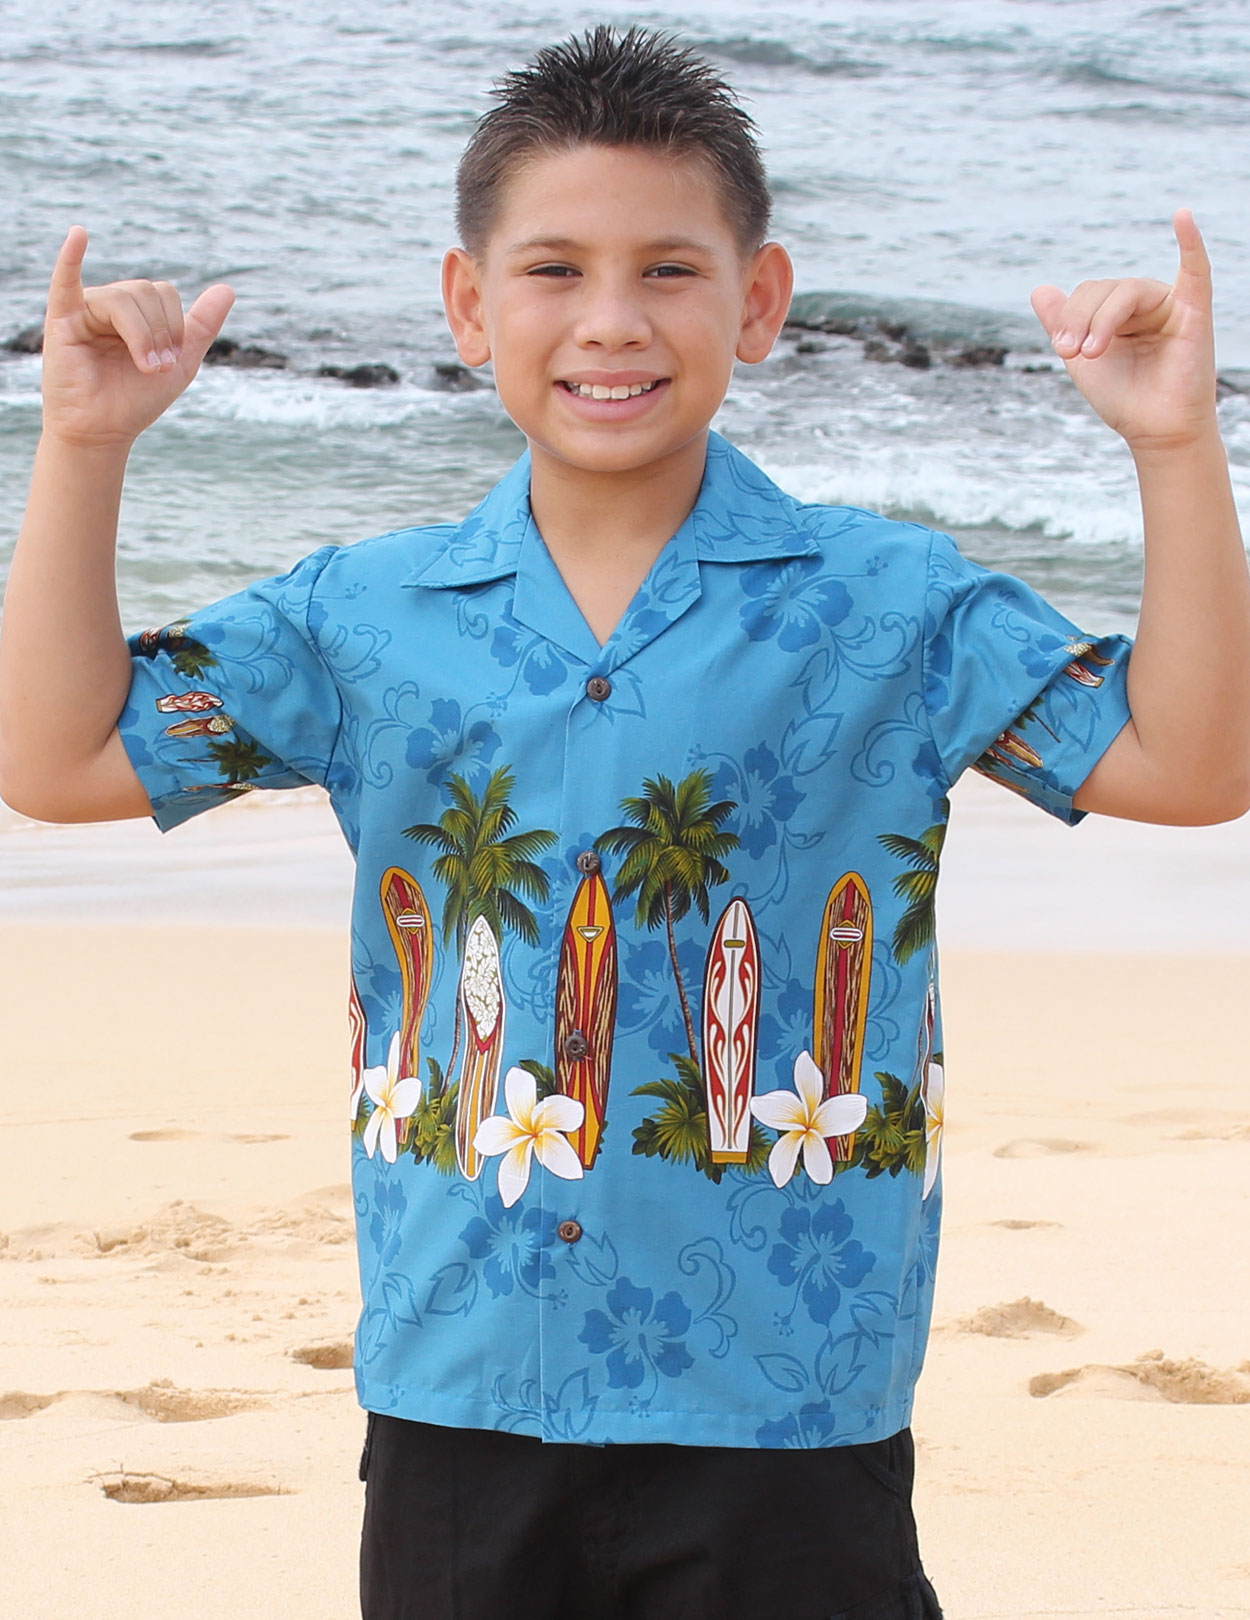 Surfing Classic Boards Boys Aloha Shirt Shaka Time Hawaii